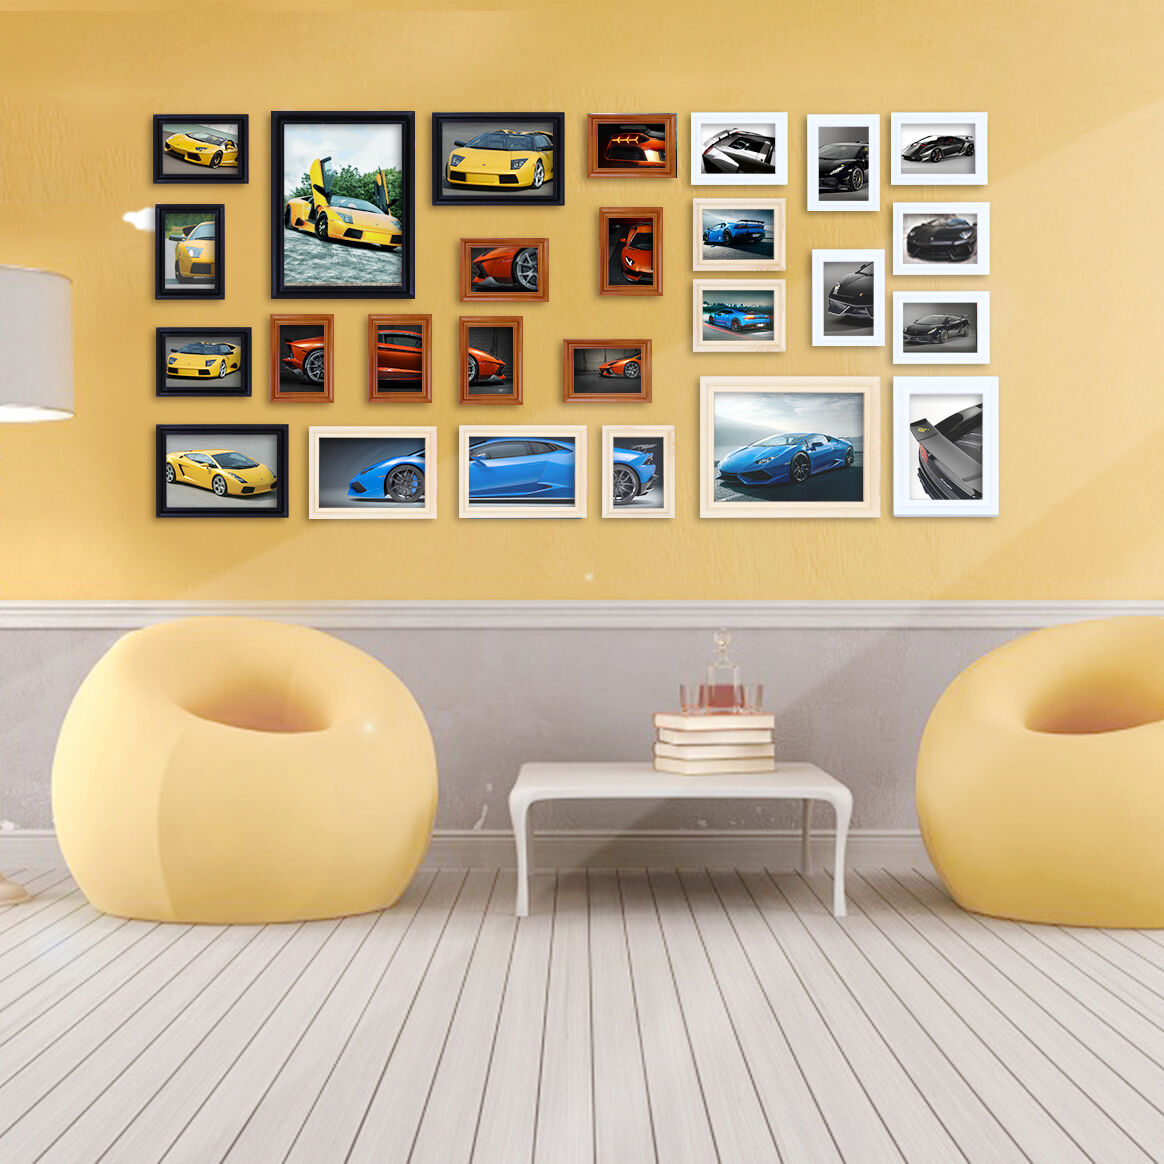 26pcs Creative Wooden Photo Modern Collage Frames Wall Art Set For